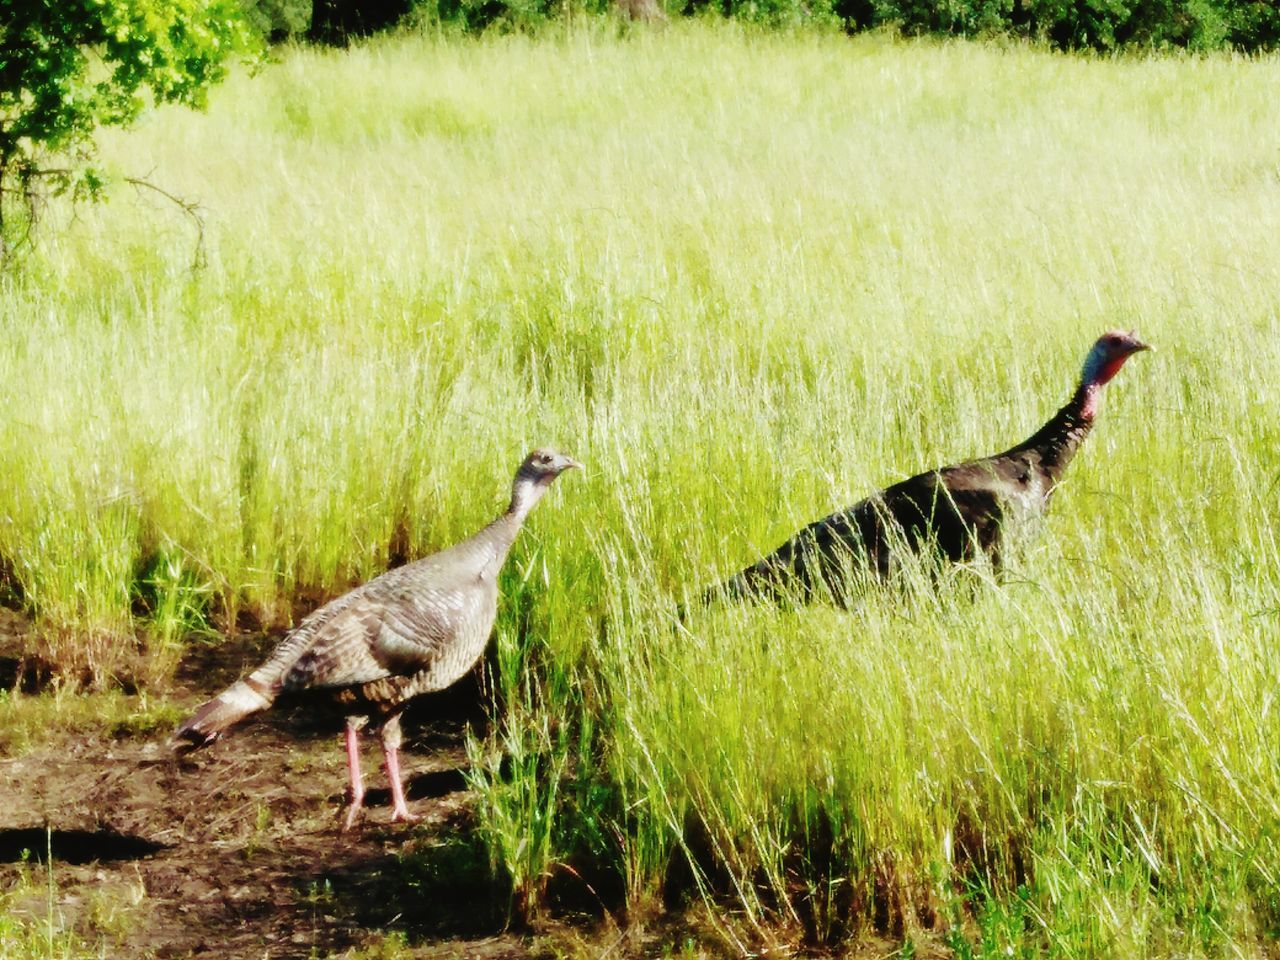 Two Animals Grass Turkeys Outdoors Nature Norcal Rural California Roseville, CA Smartphonephotography Smartphone Photographer From My Point Of View Norcal Cali Life